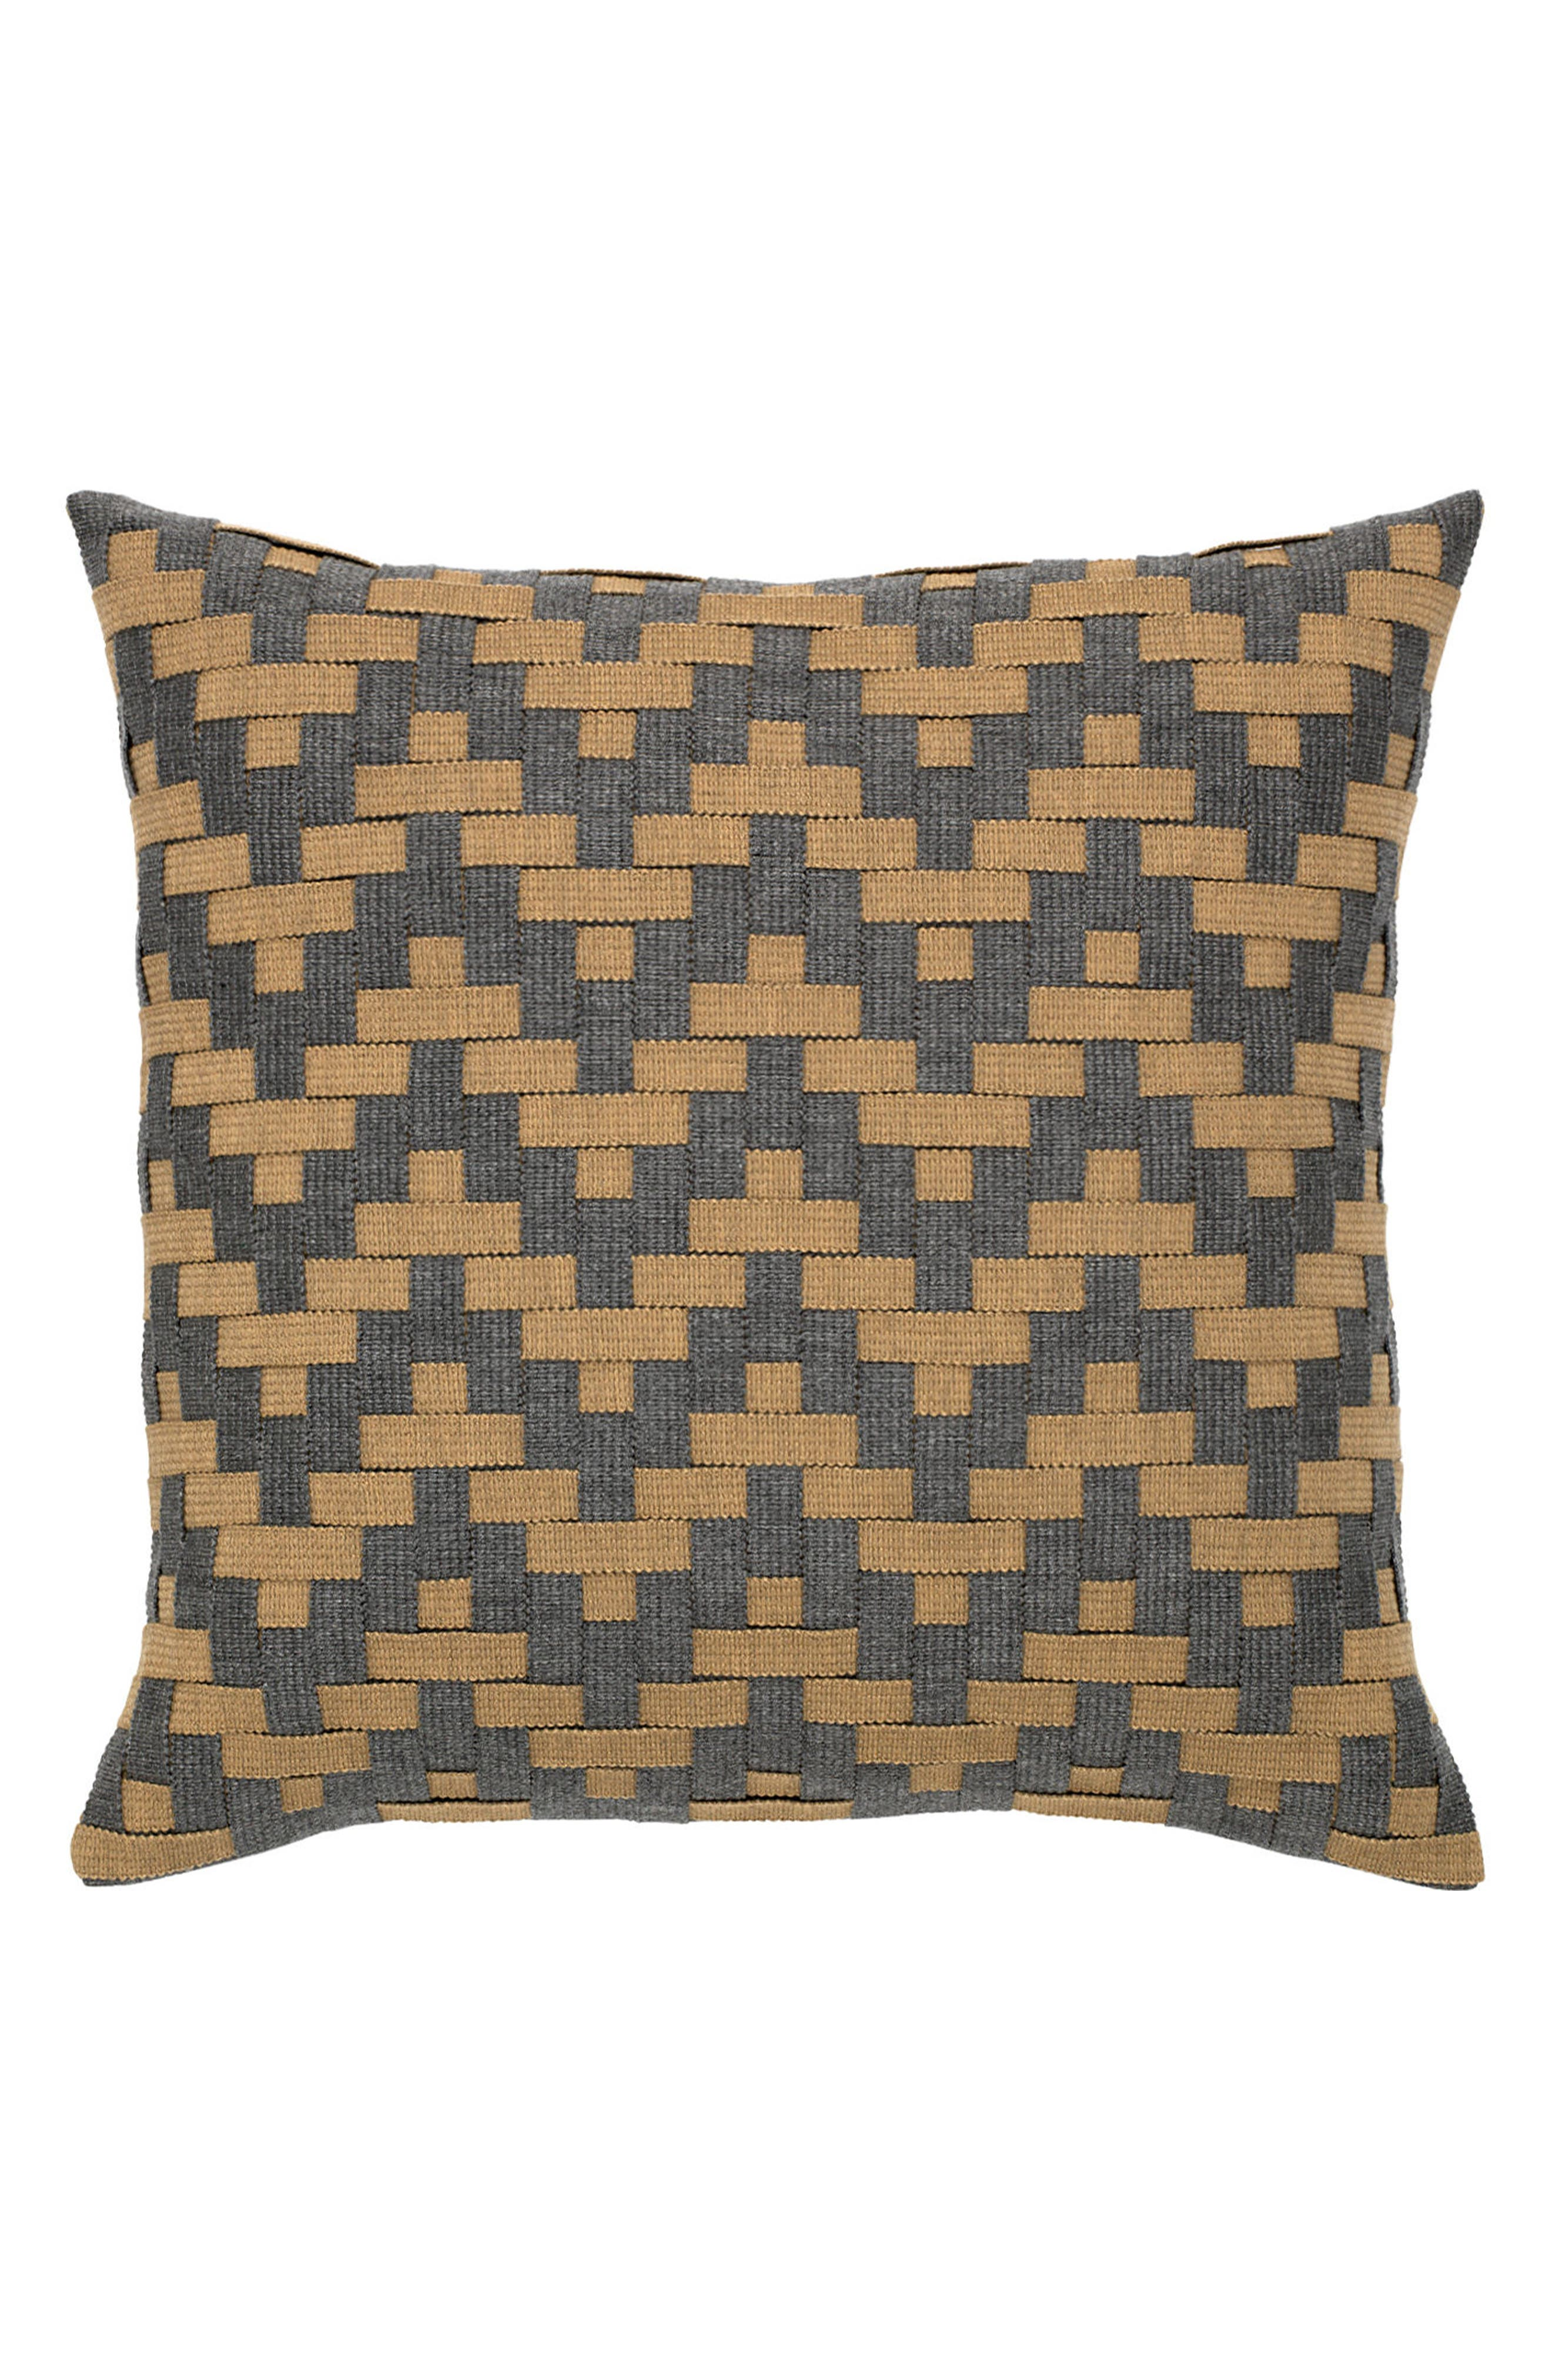 Smoke Basket Weave Indoor/Outdoor Accent Pillow,                         Main,                         color, BROWN/ GREY